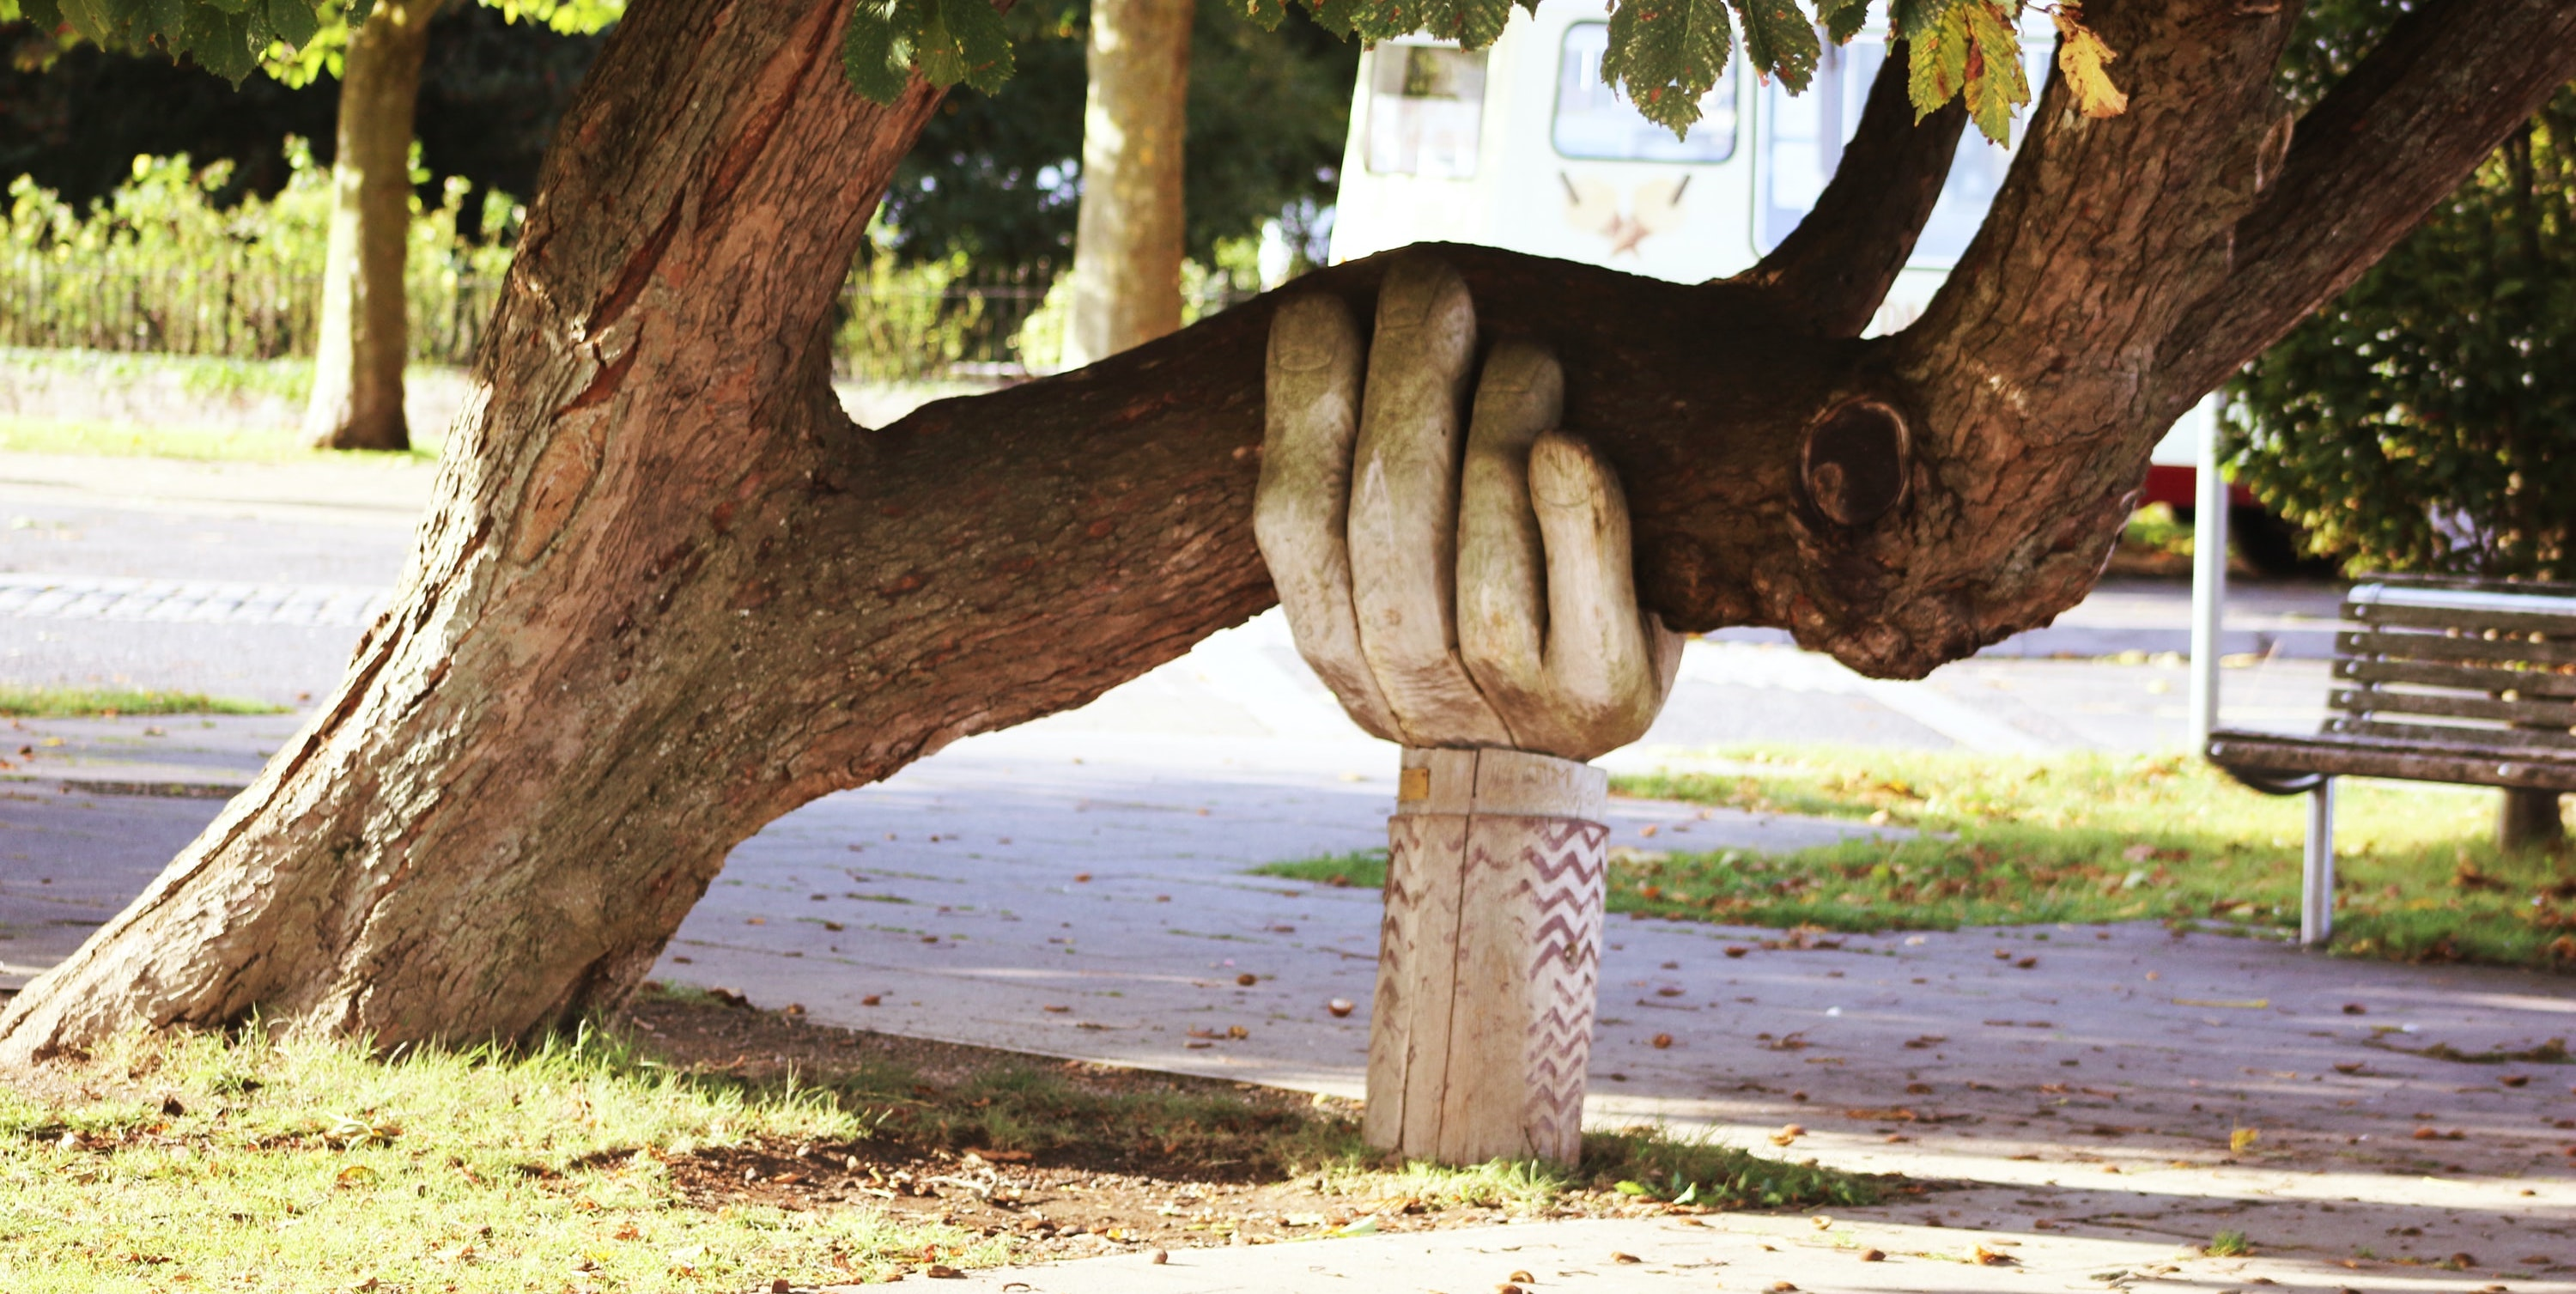 A large, carved, wooden hand supporting a tree that has nearly fallen over